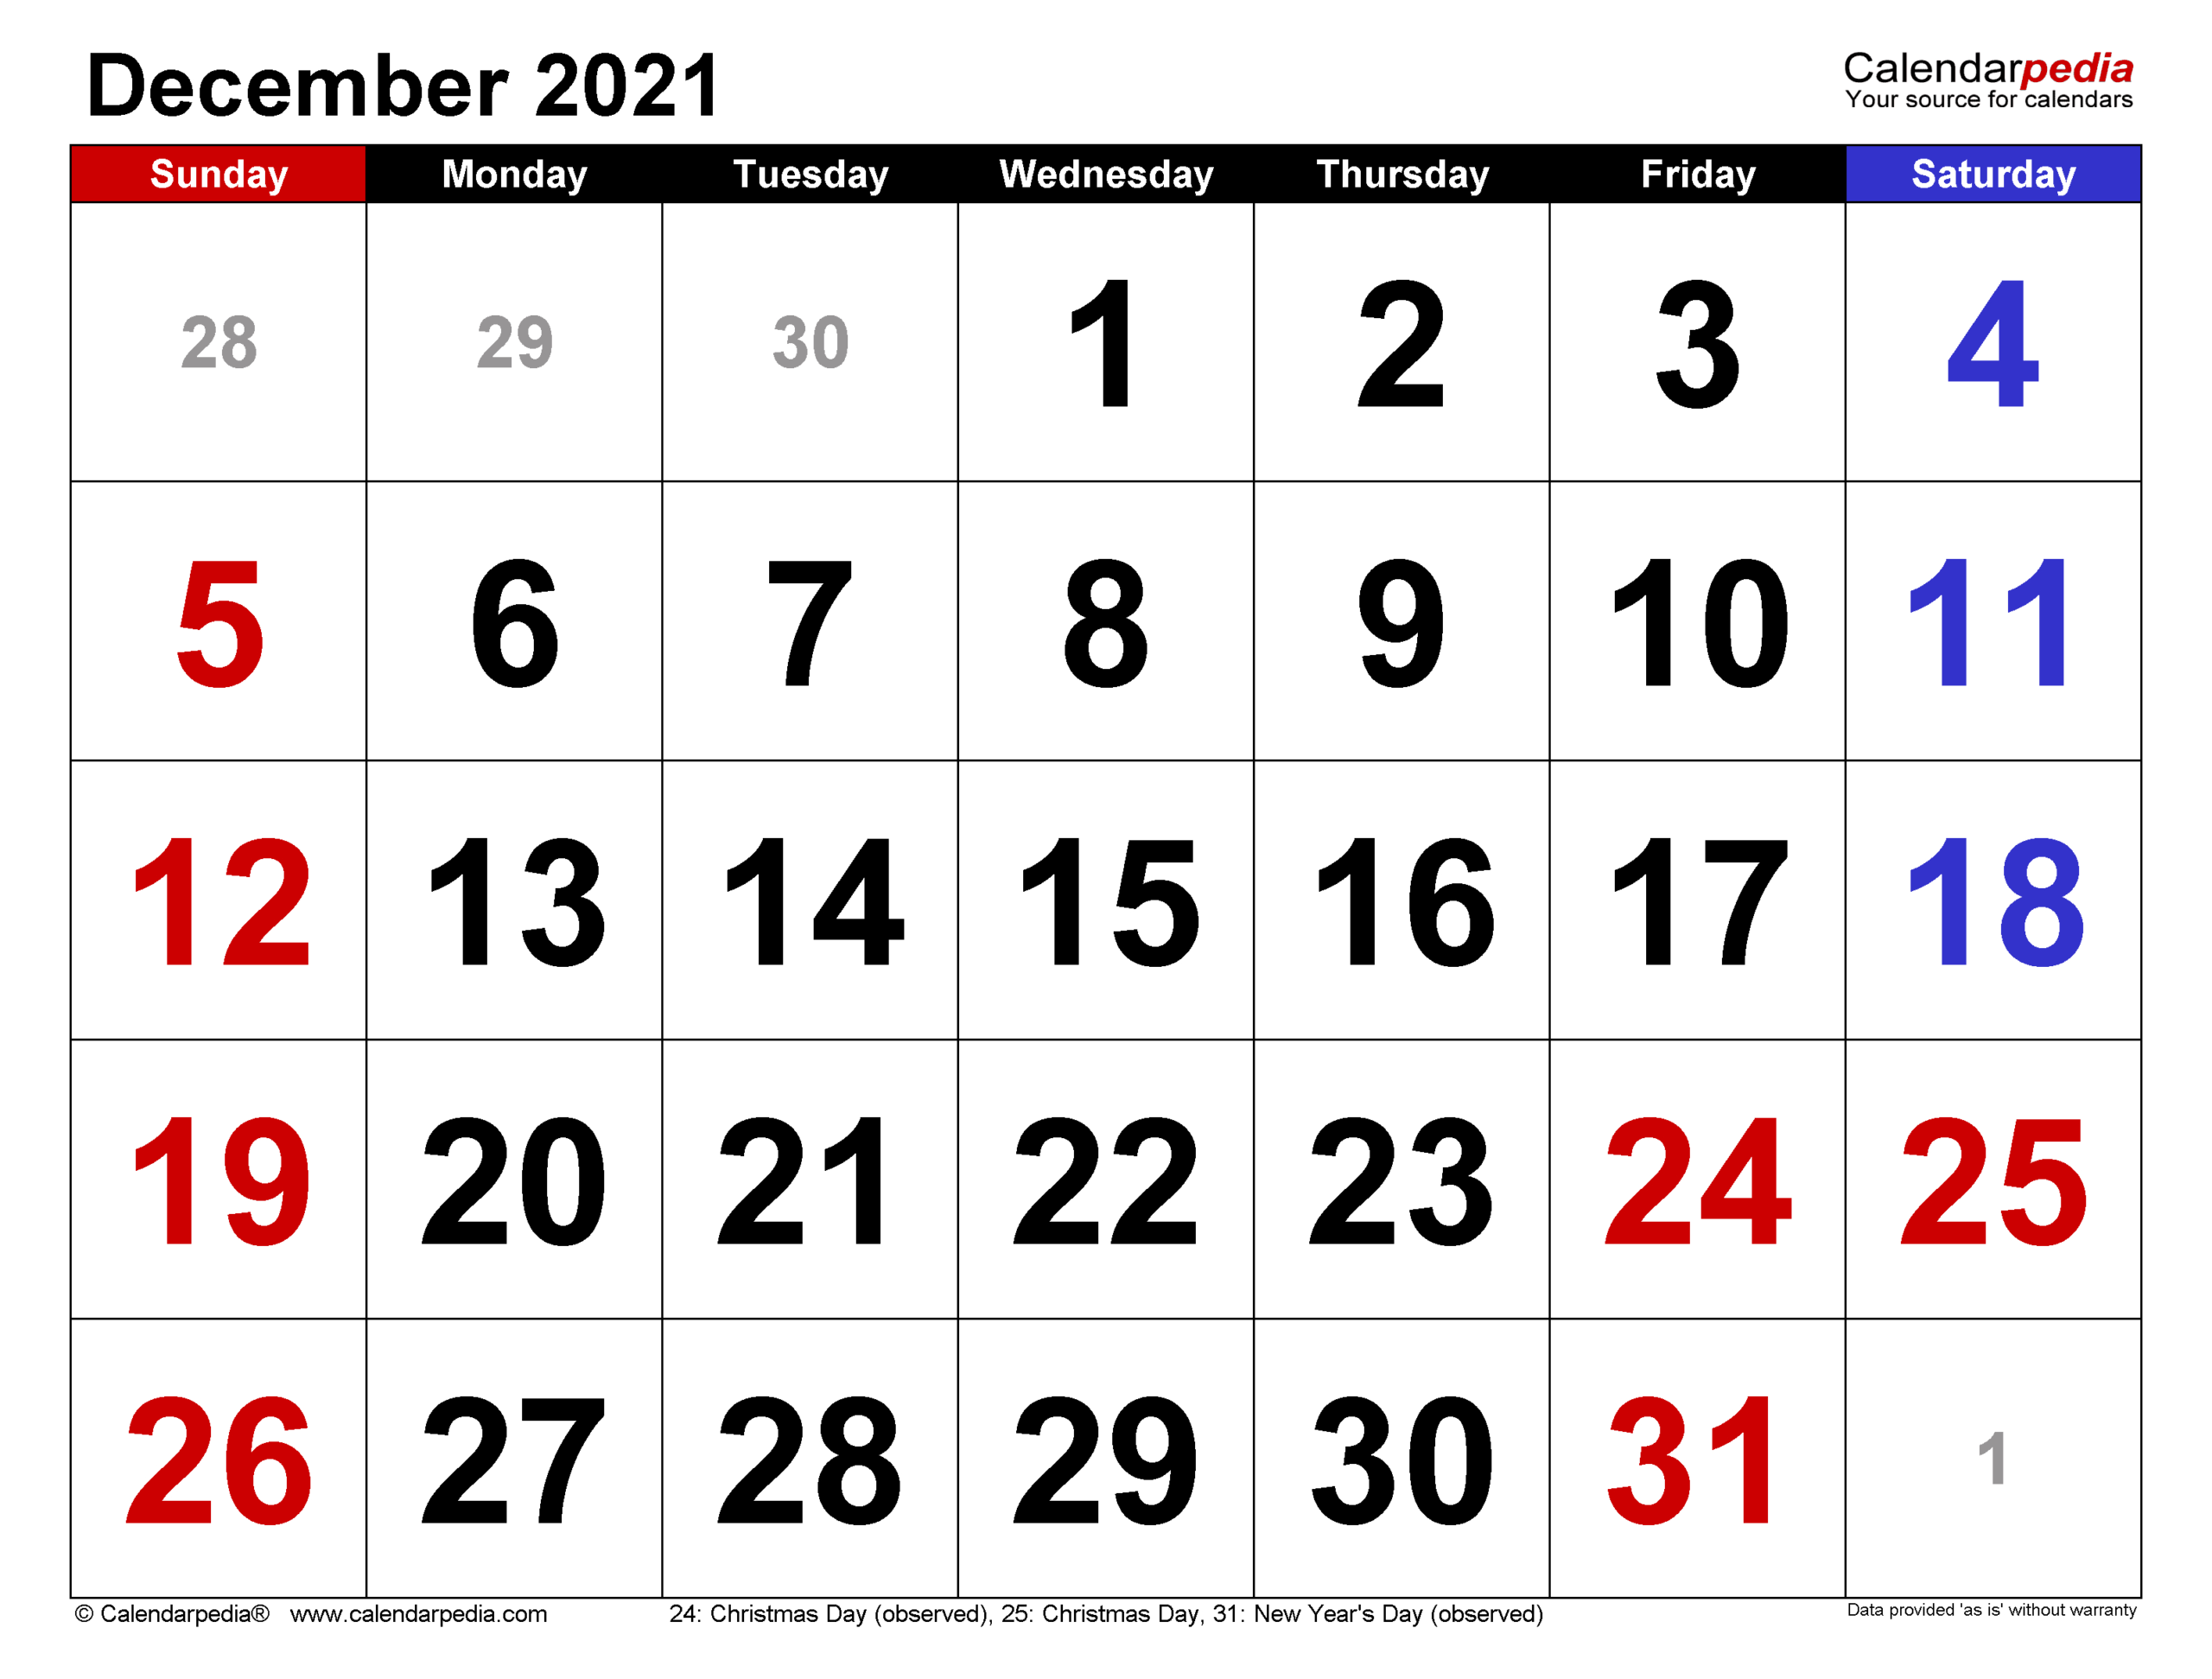 December 2021 Calendar | Templates For Word, Excel And Pdf